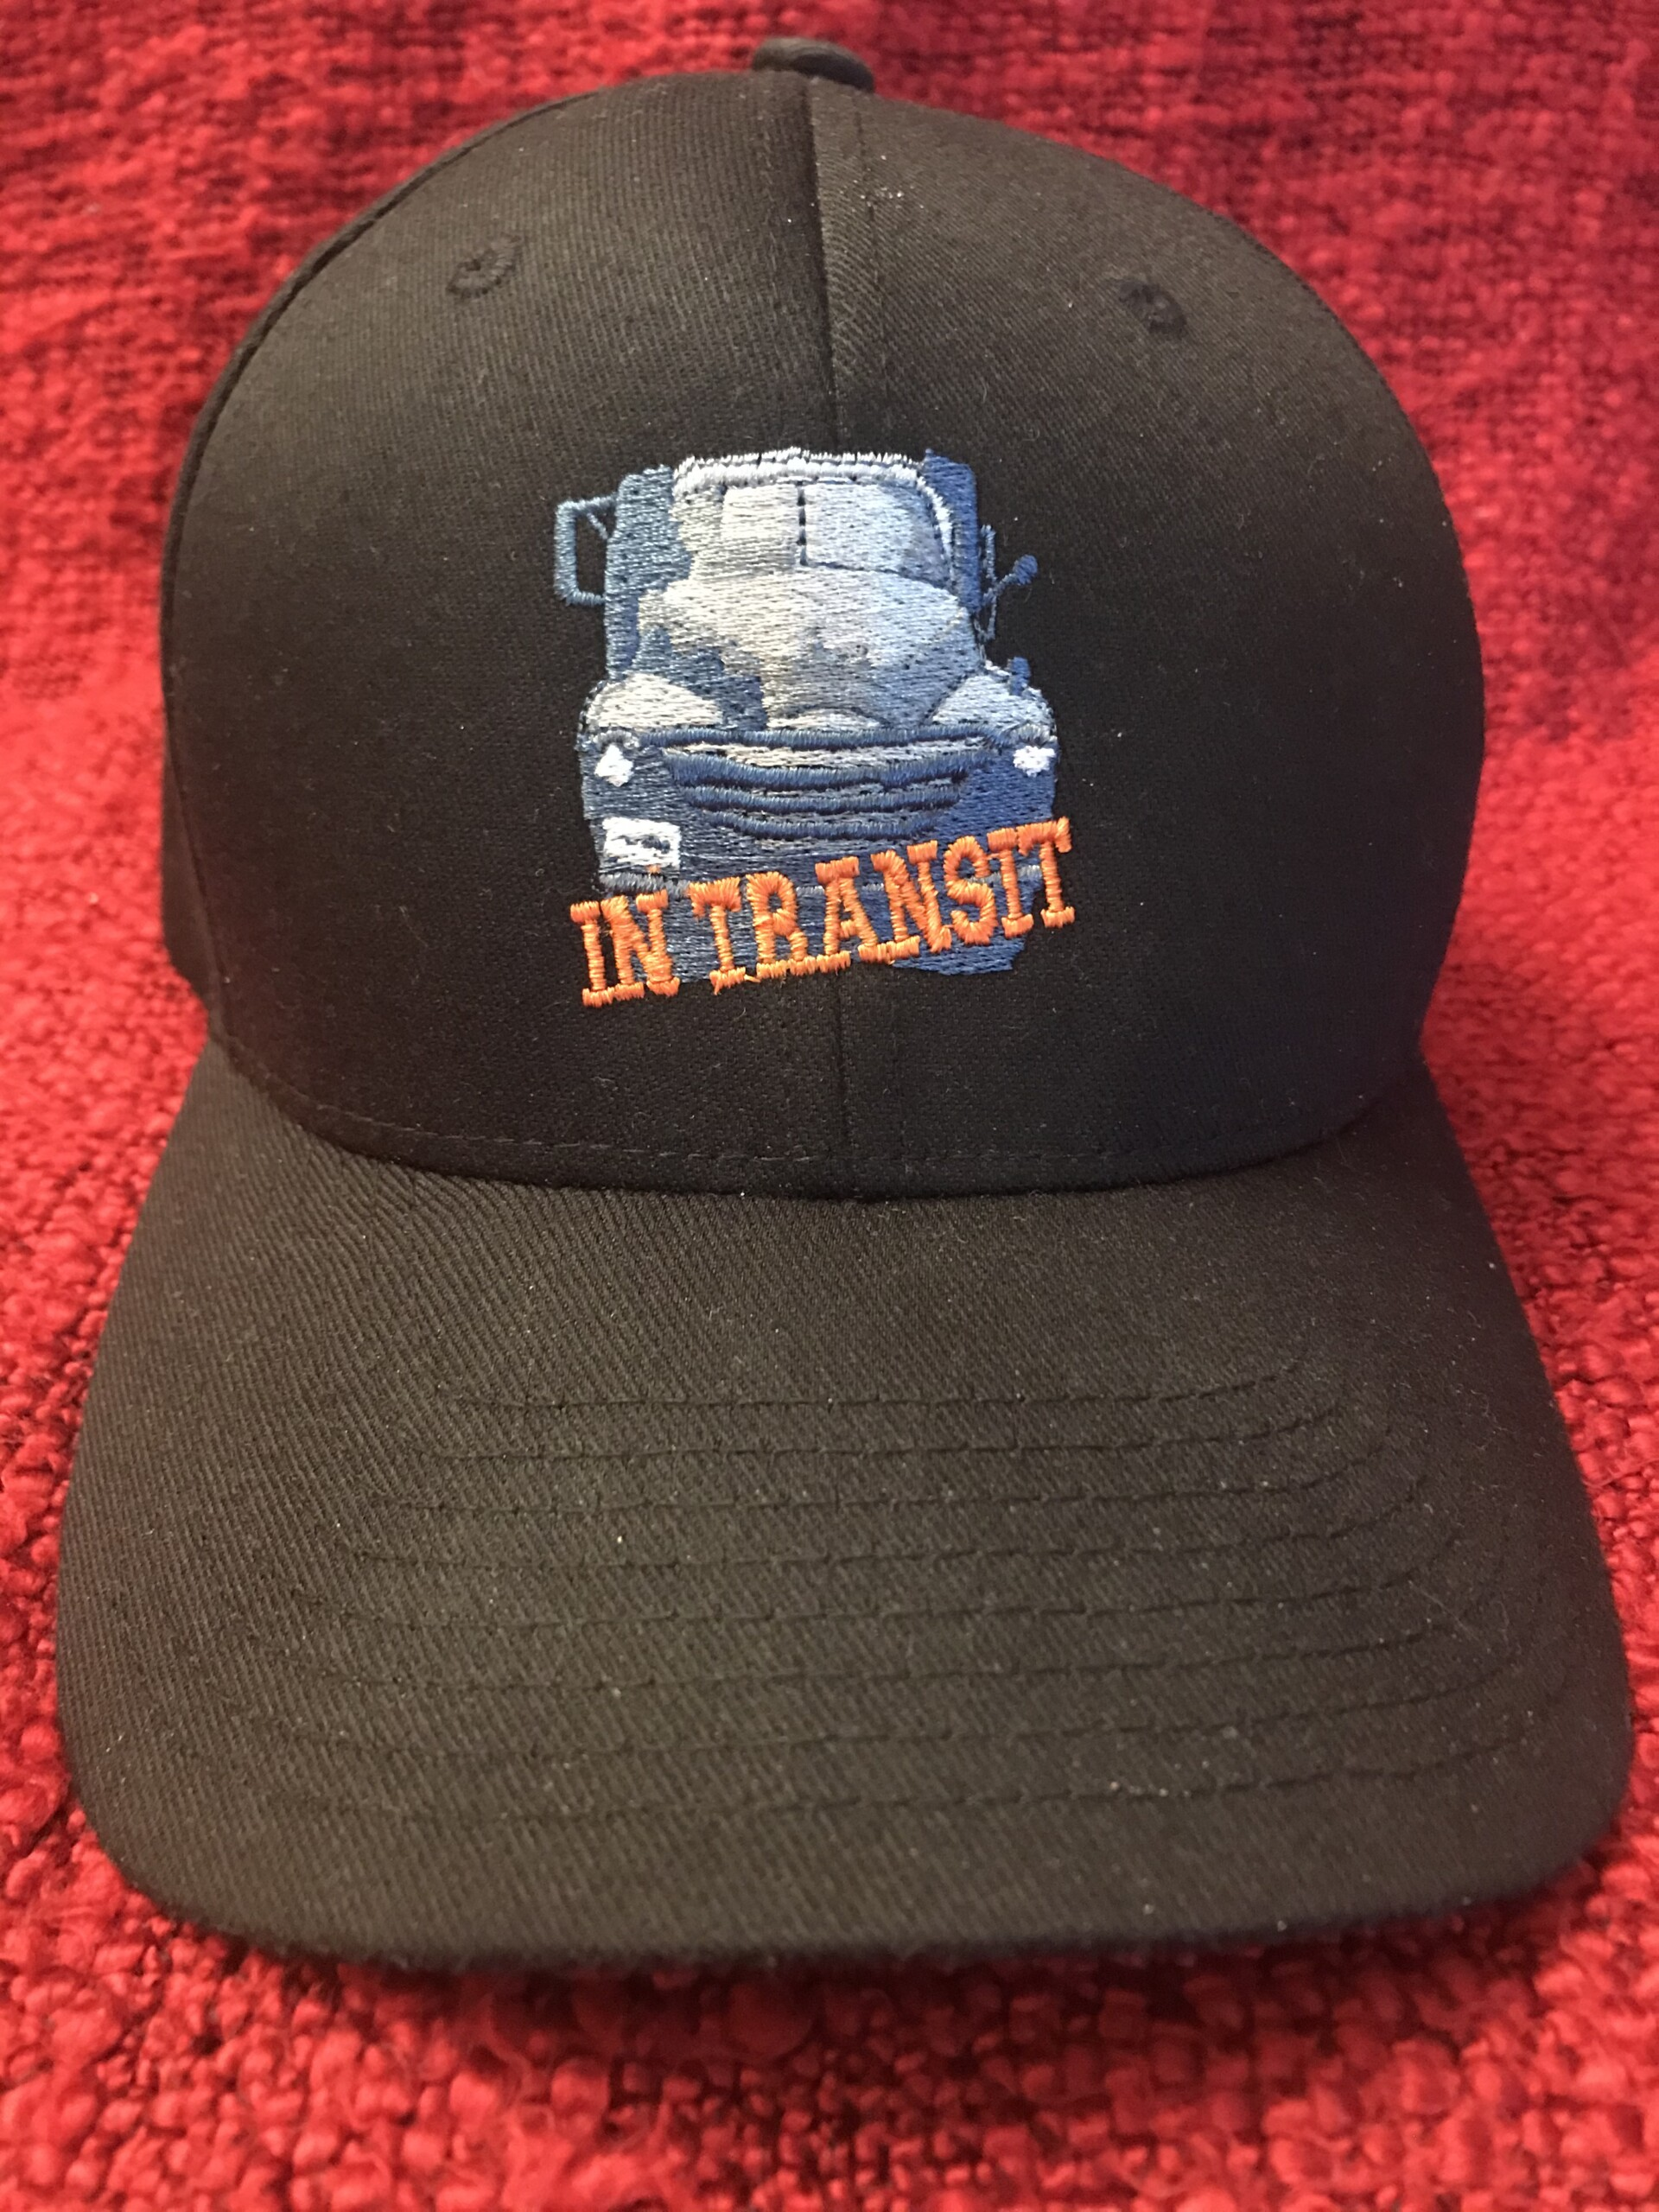 In Transit Logo on Black Hat